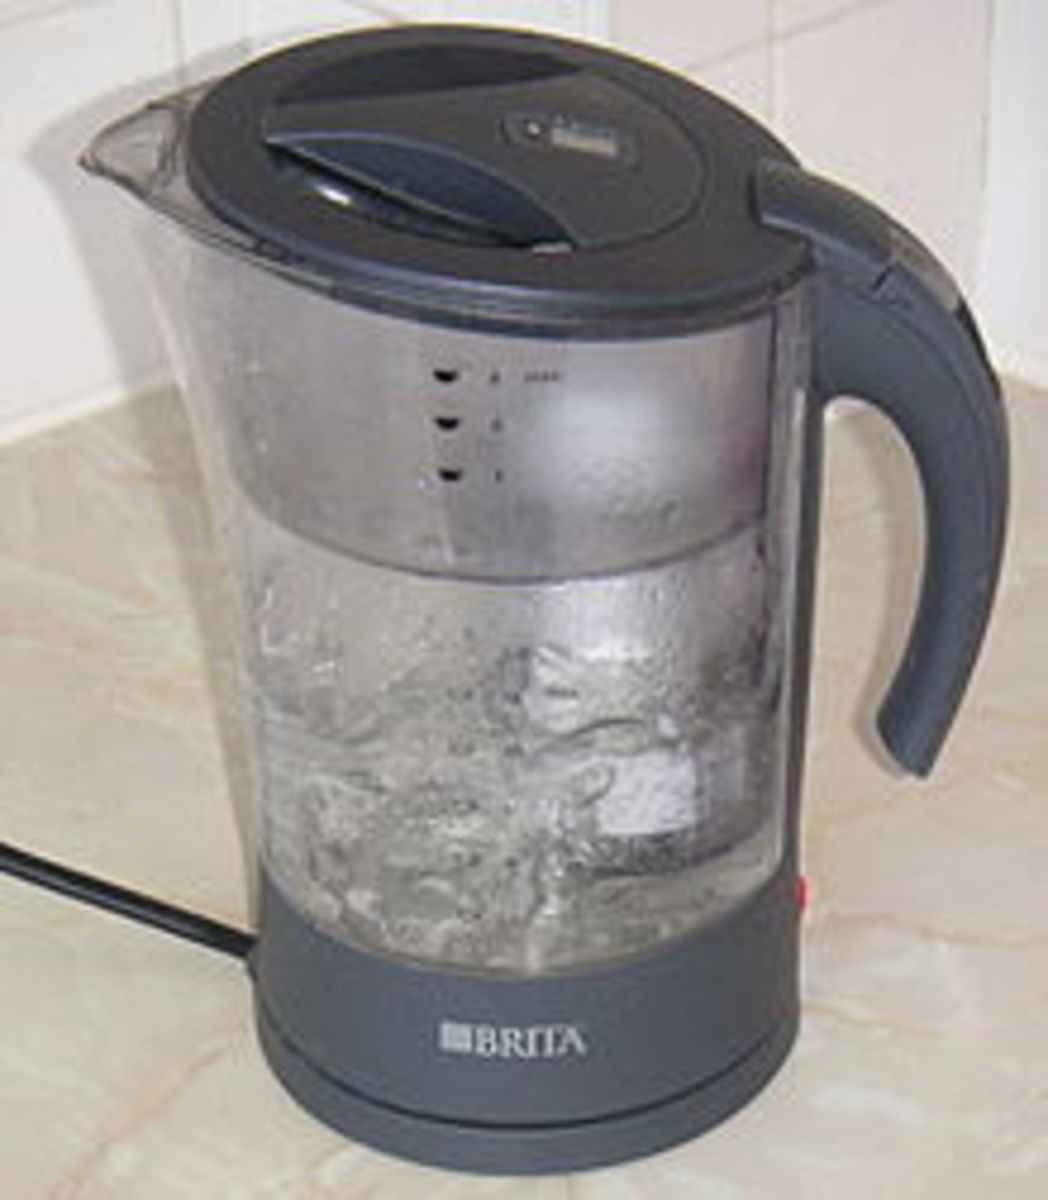 Your spleen is like a Brita water filter.